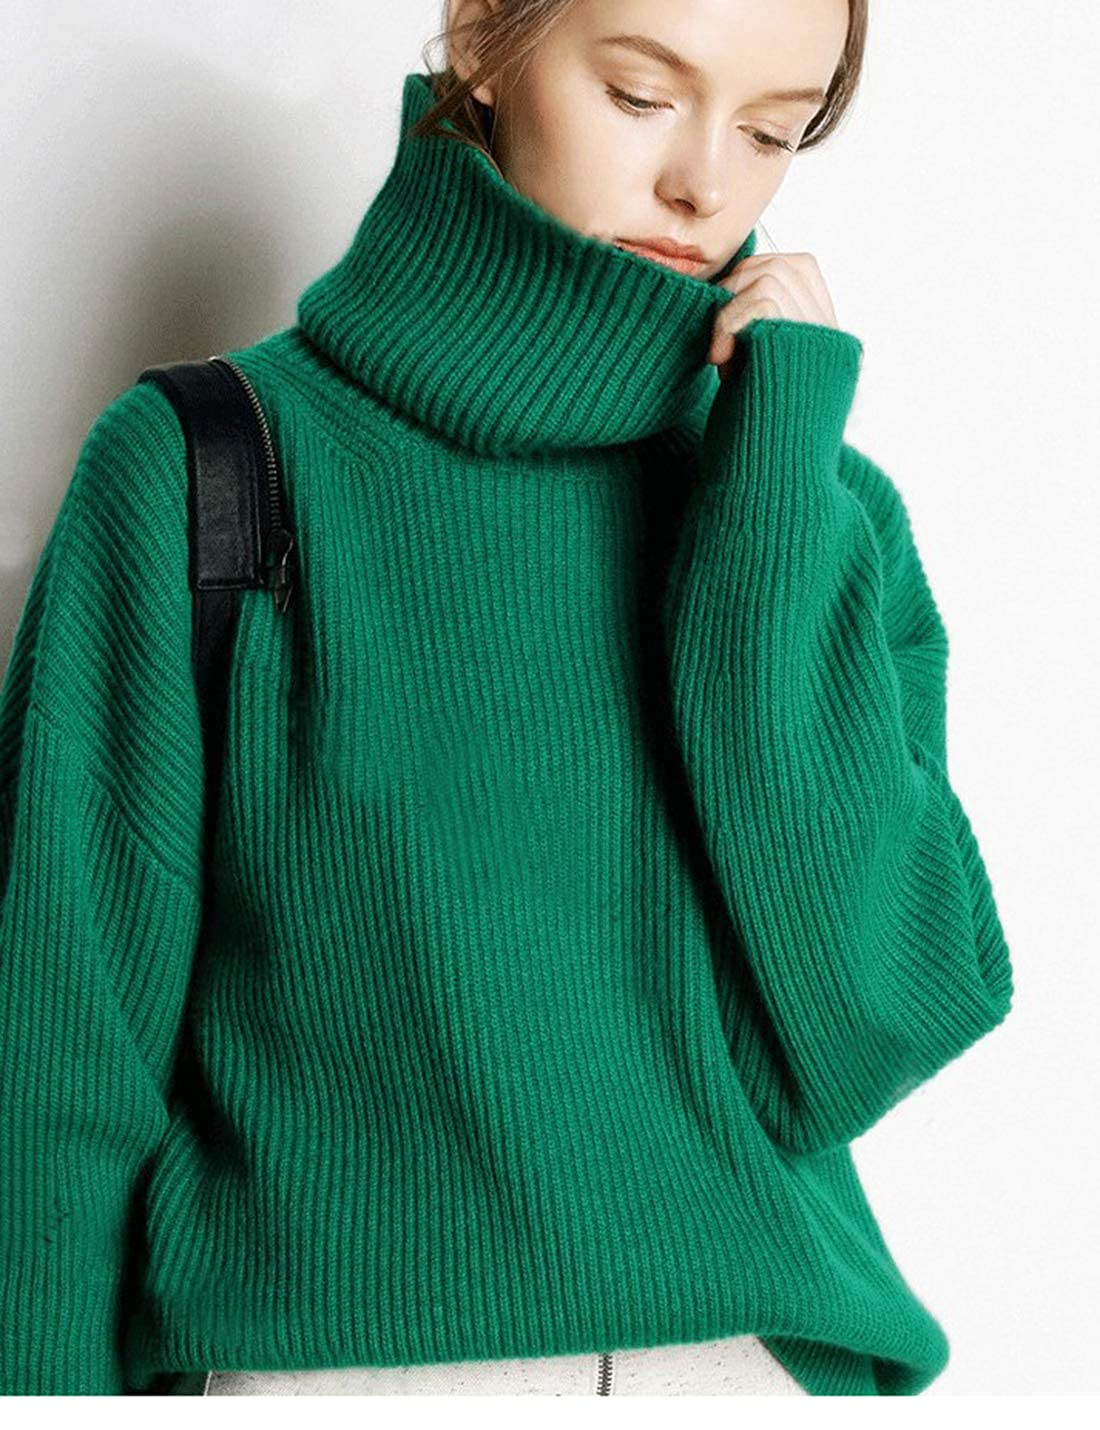 Yeokou Womens Casual Turtle Neck Cashmere Wool Knitted Pullovers Sweater